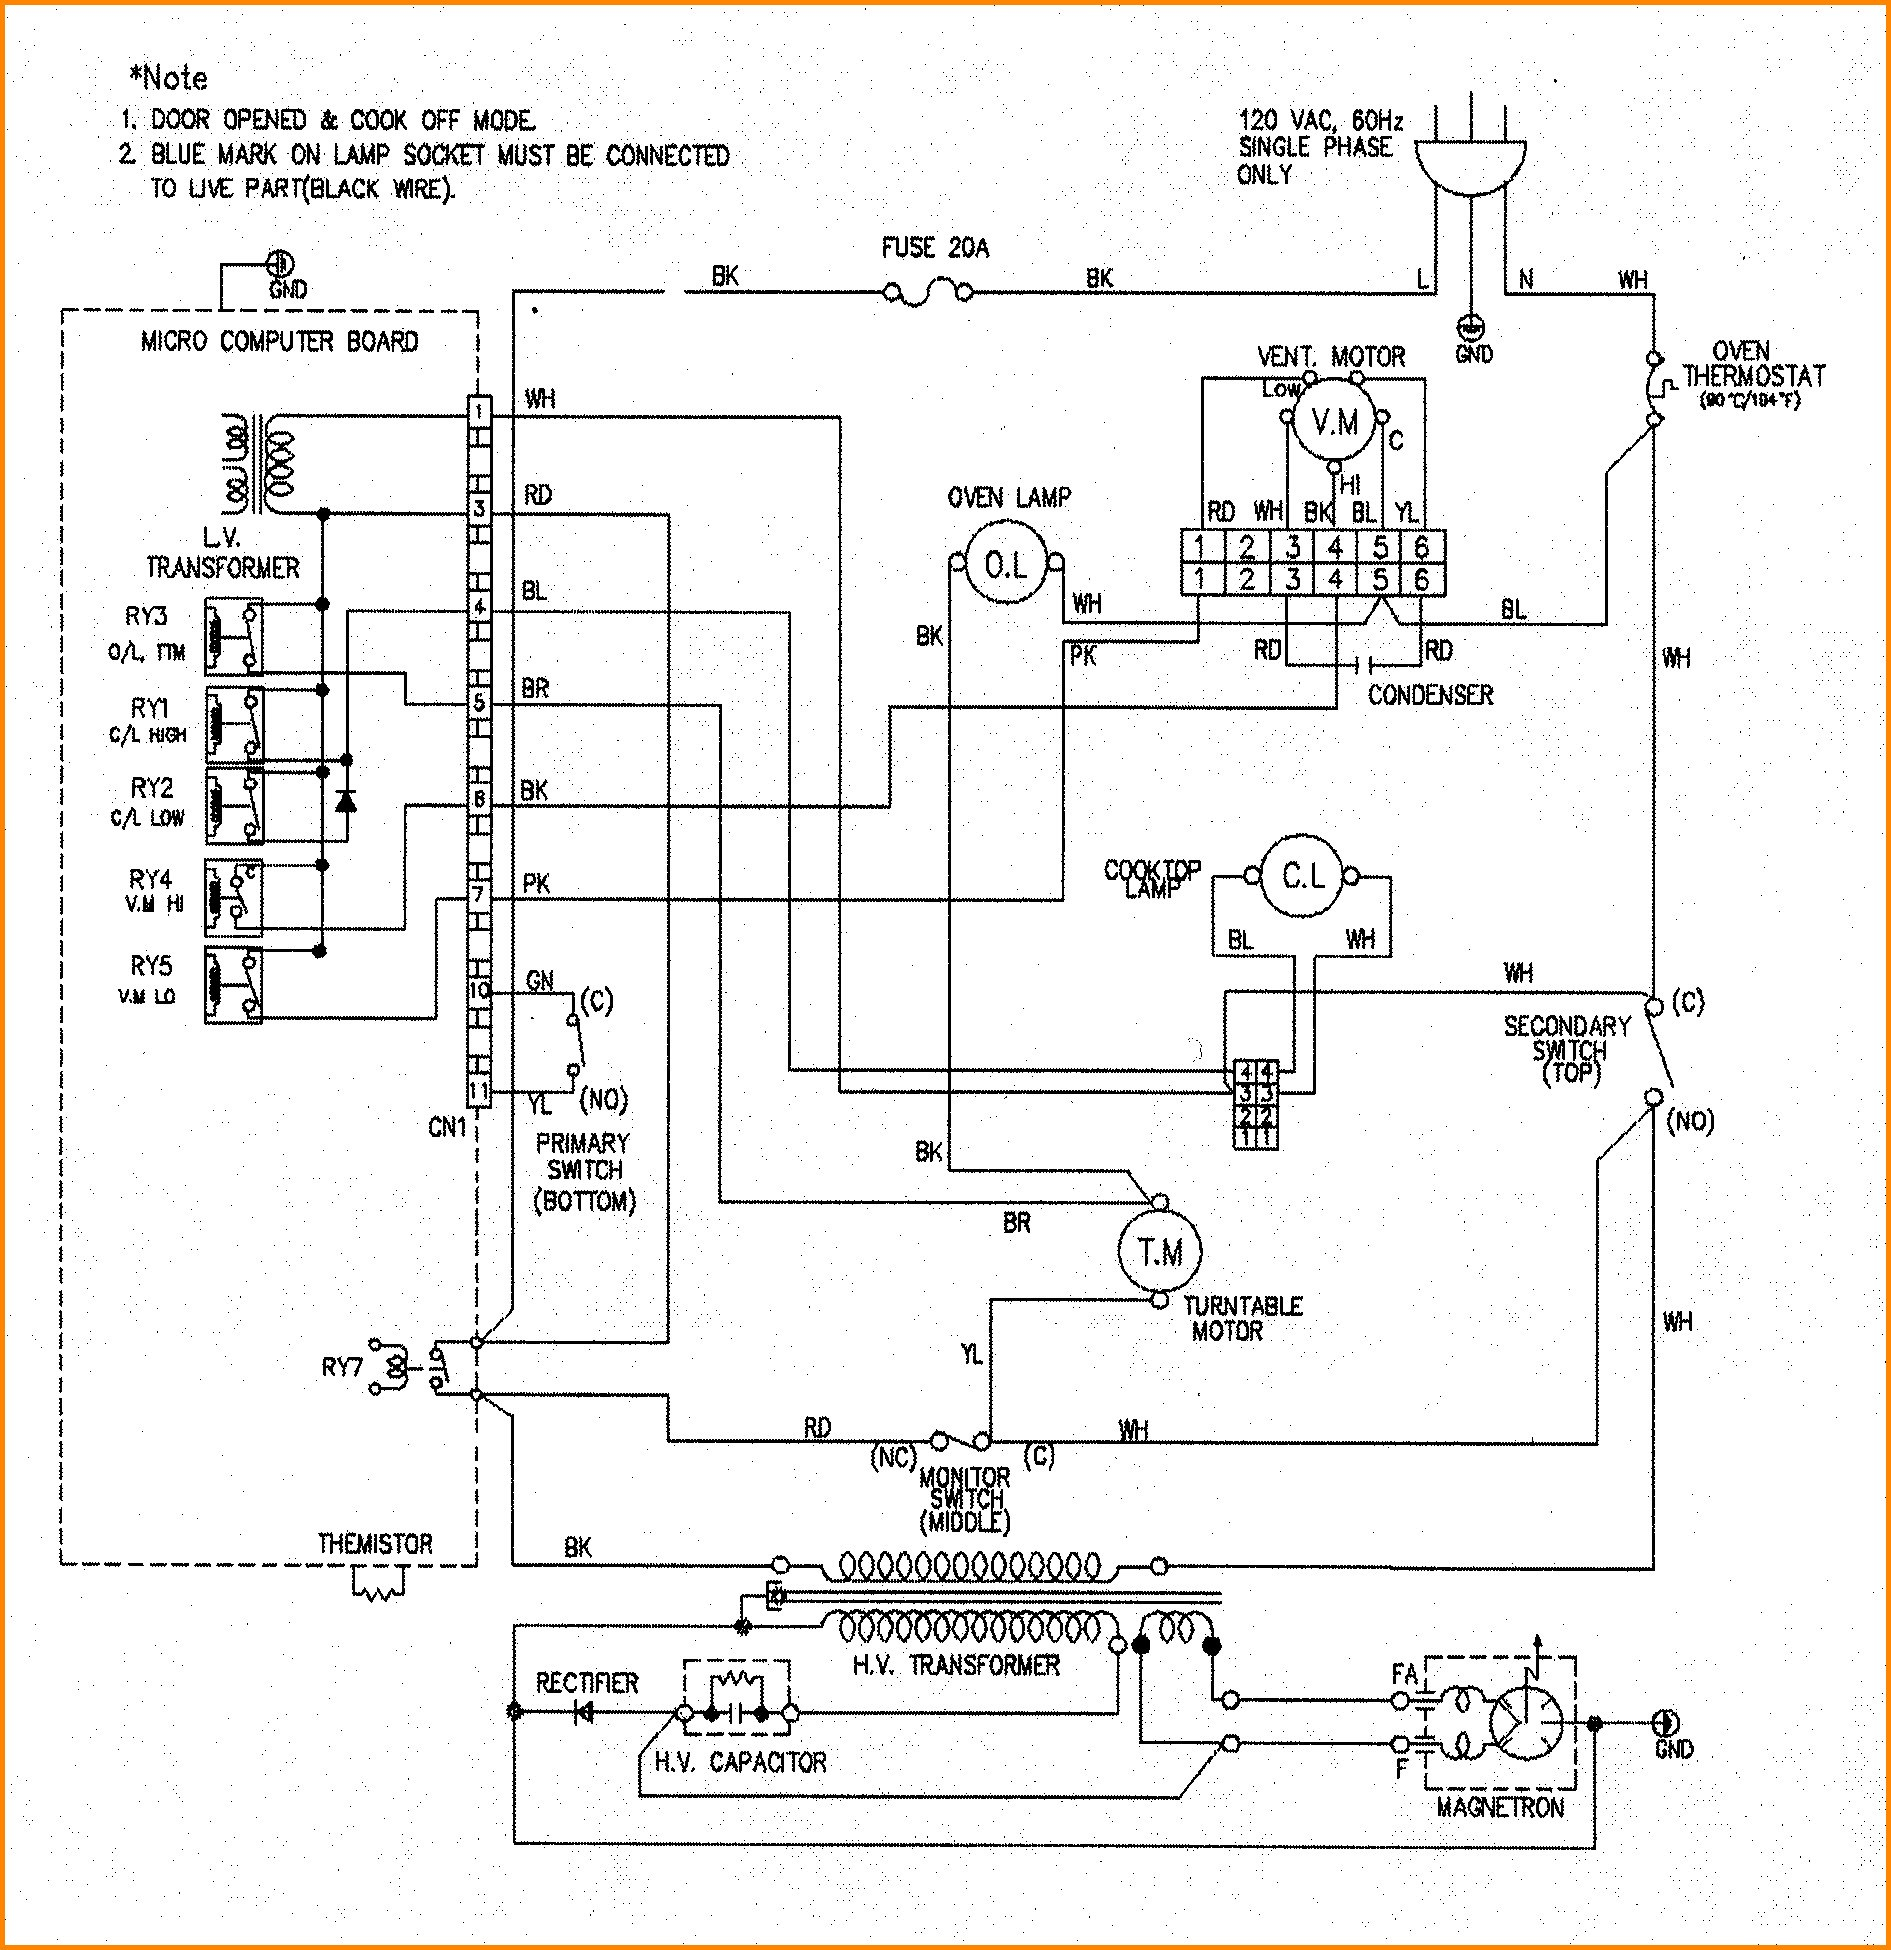 Oven Wiring Harness Free Download Diagrams Pictures Diy Powder Coating Diagram Wire Rh Abetter Pw